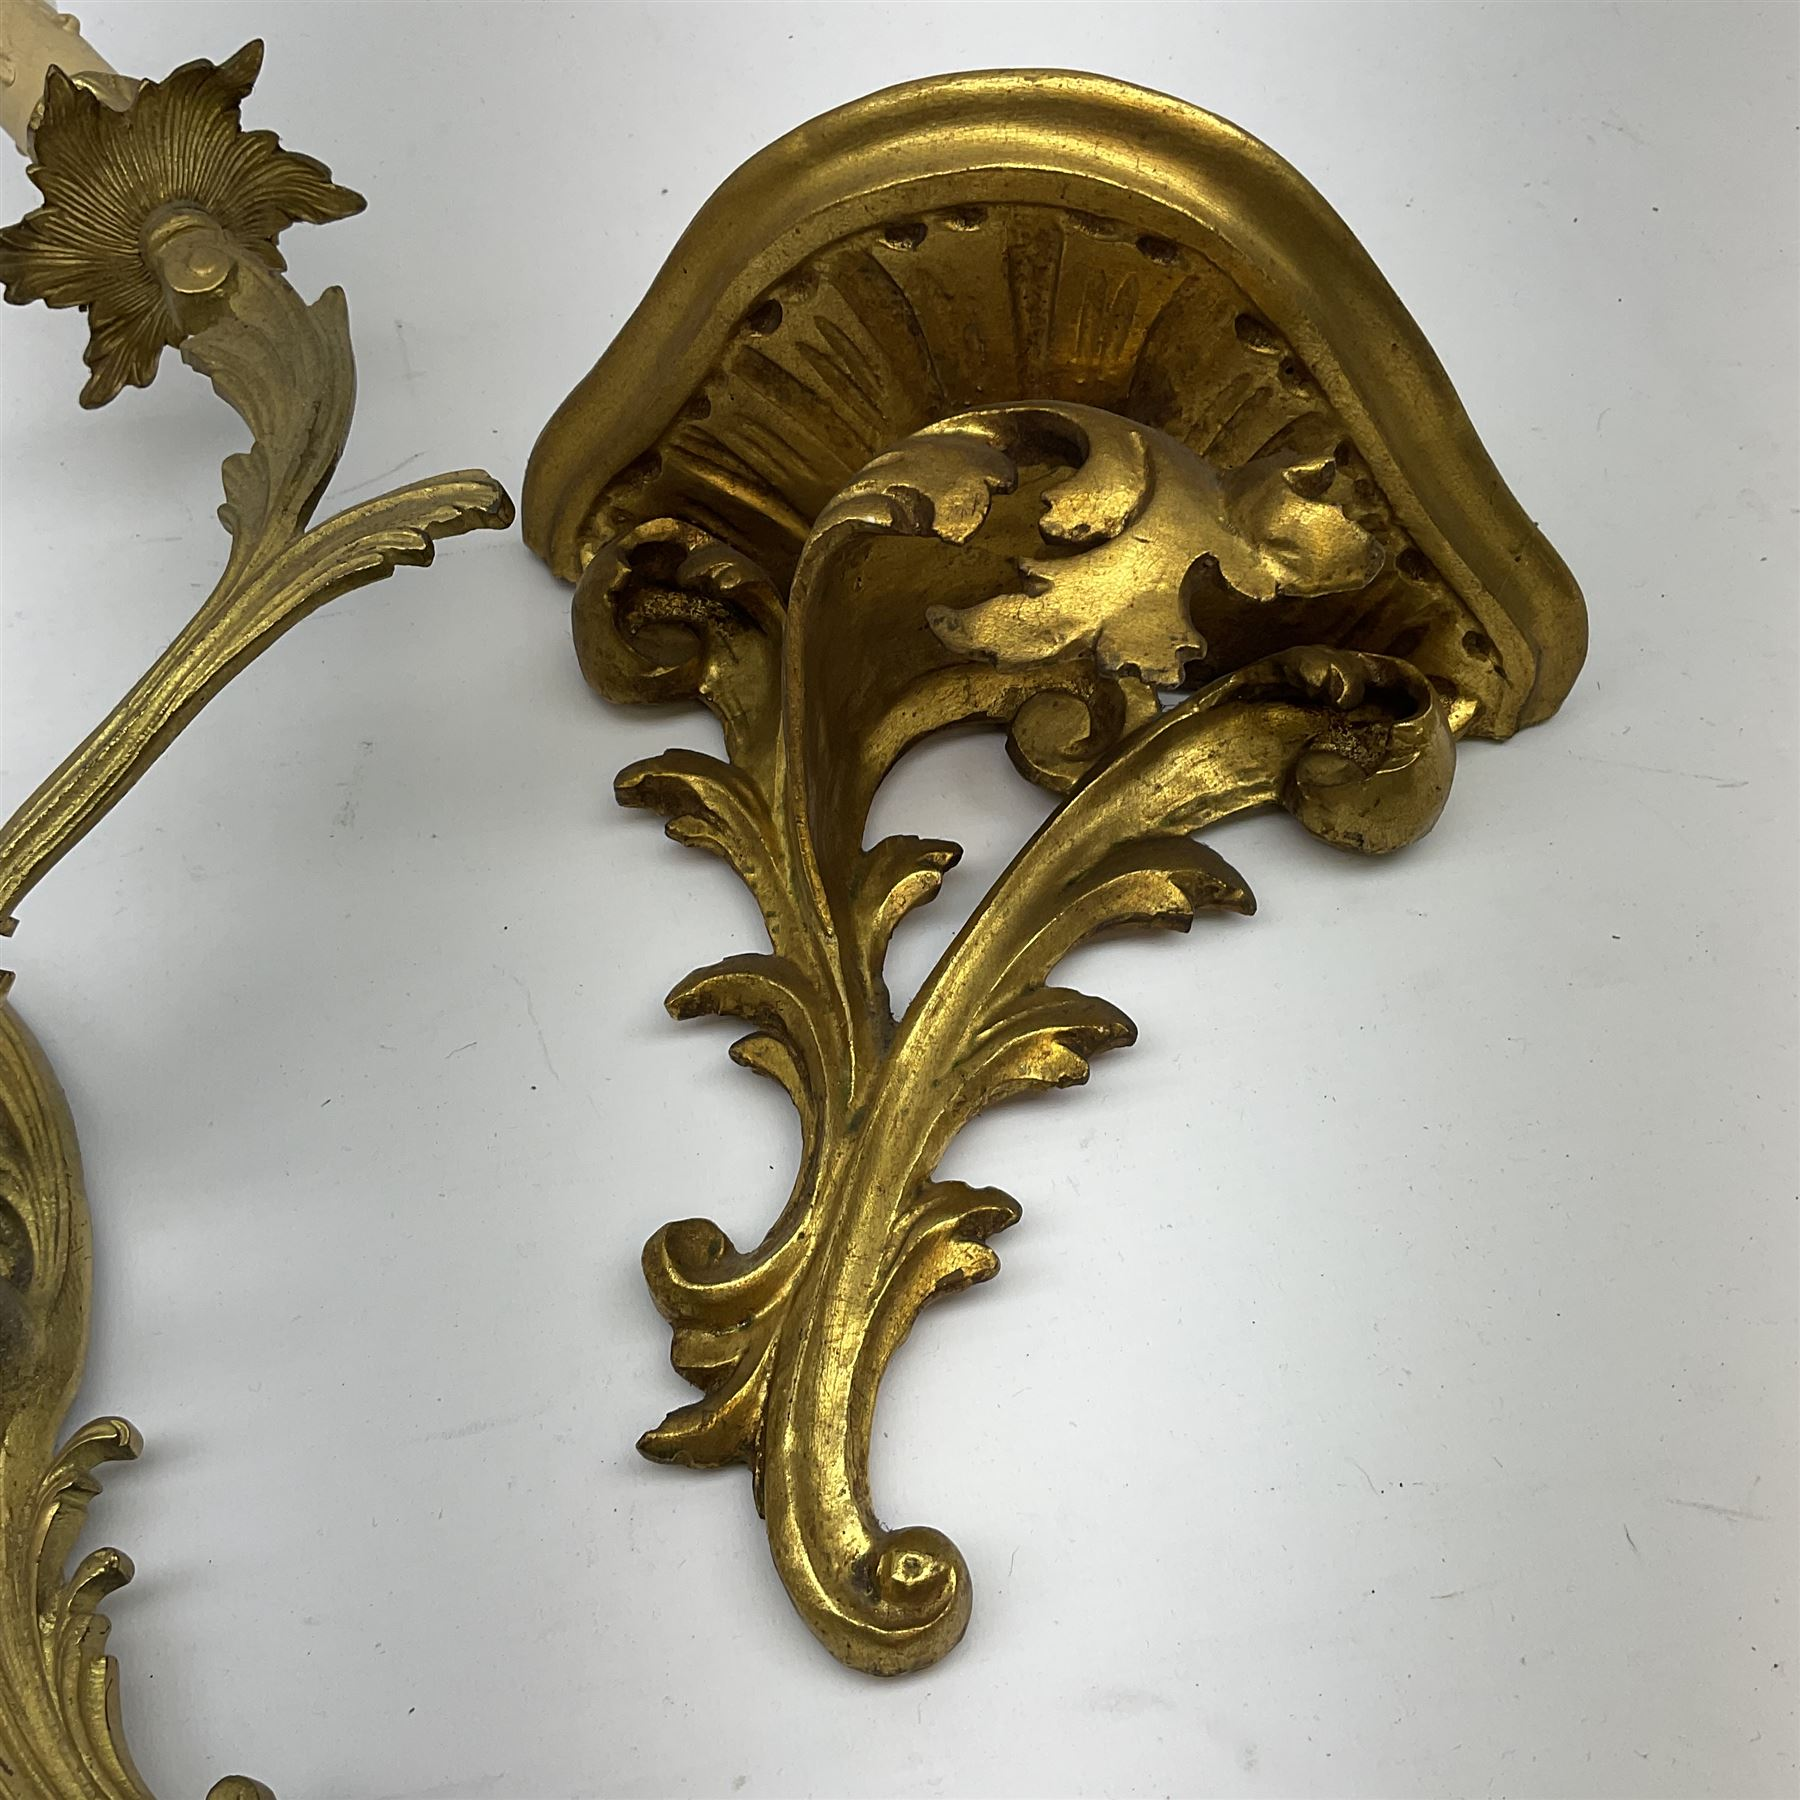 A Rococo style gilt metal three branch wall sconce wall light - Image 3 of 3